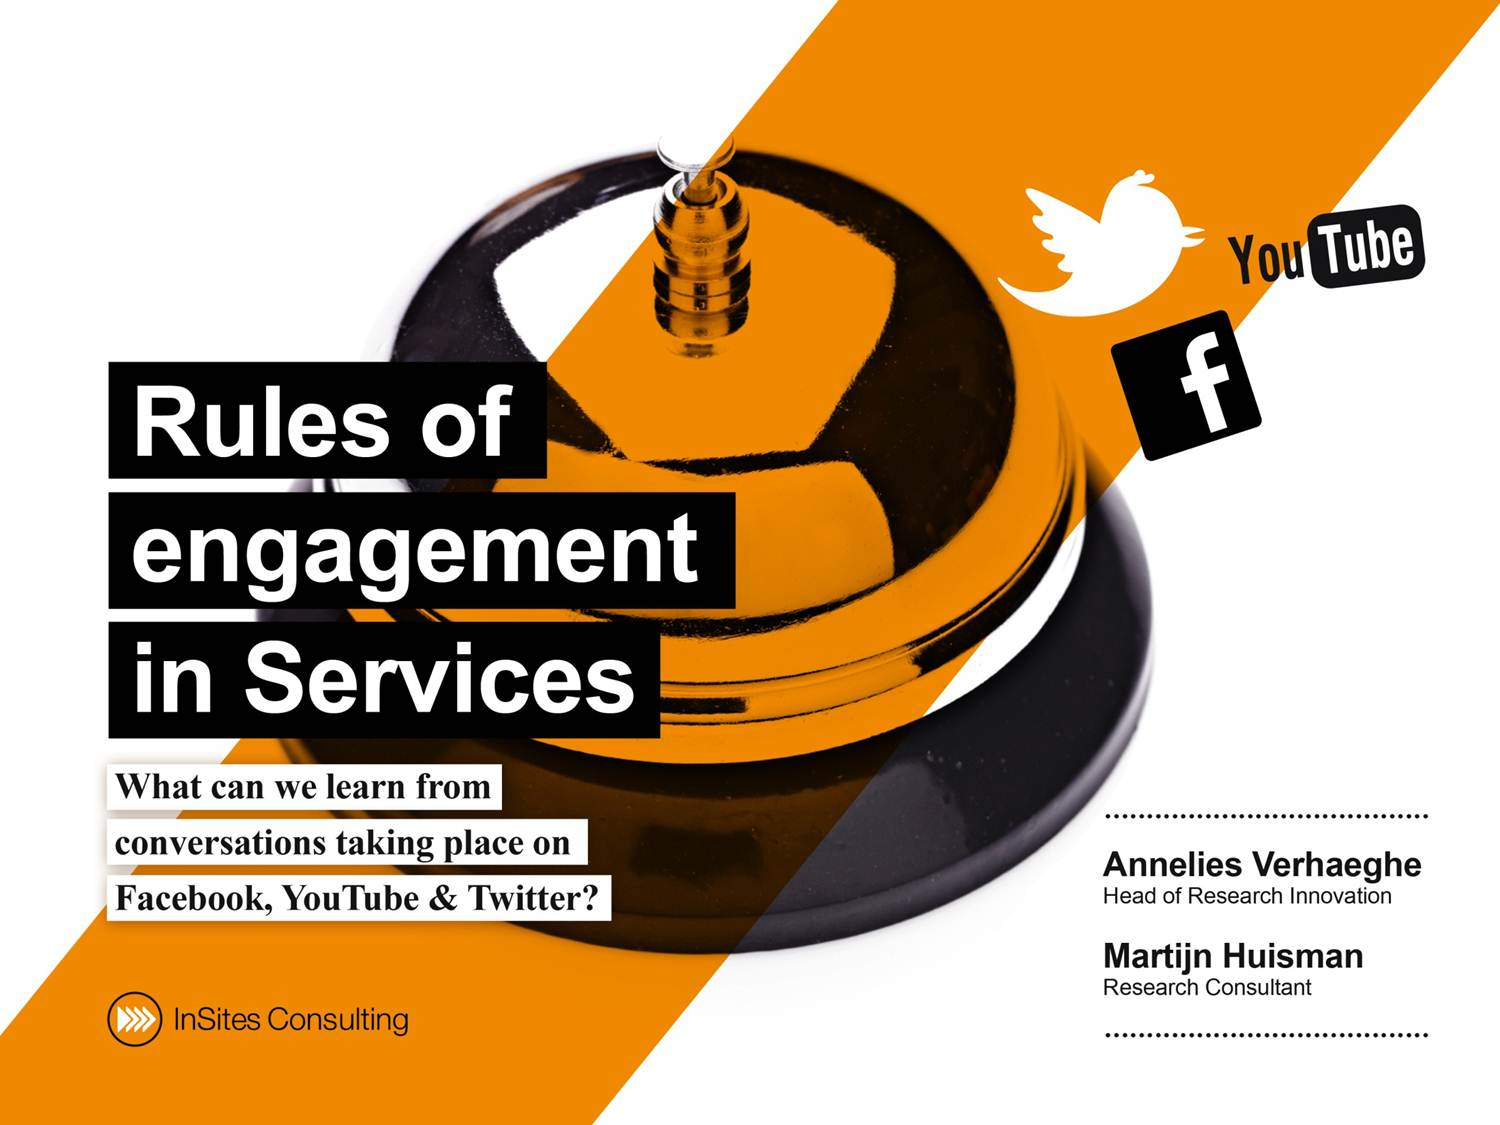 Rules of engagement in Services